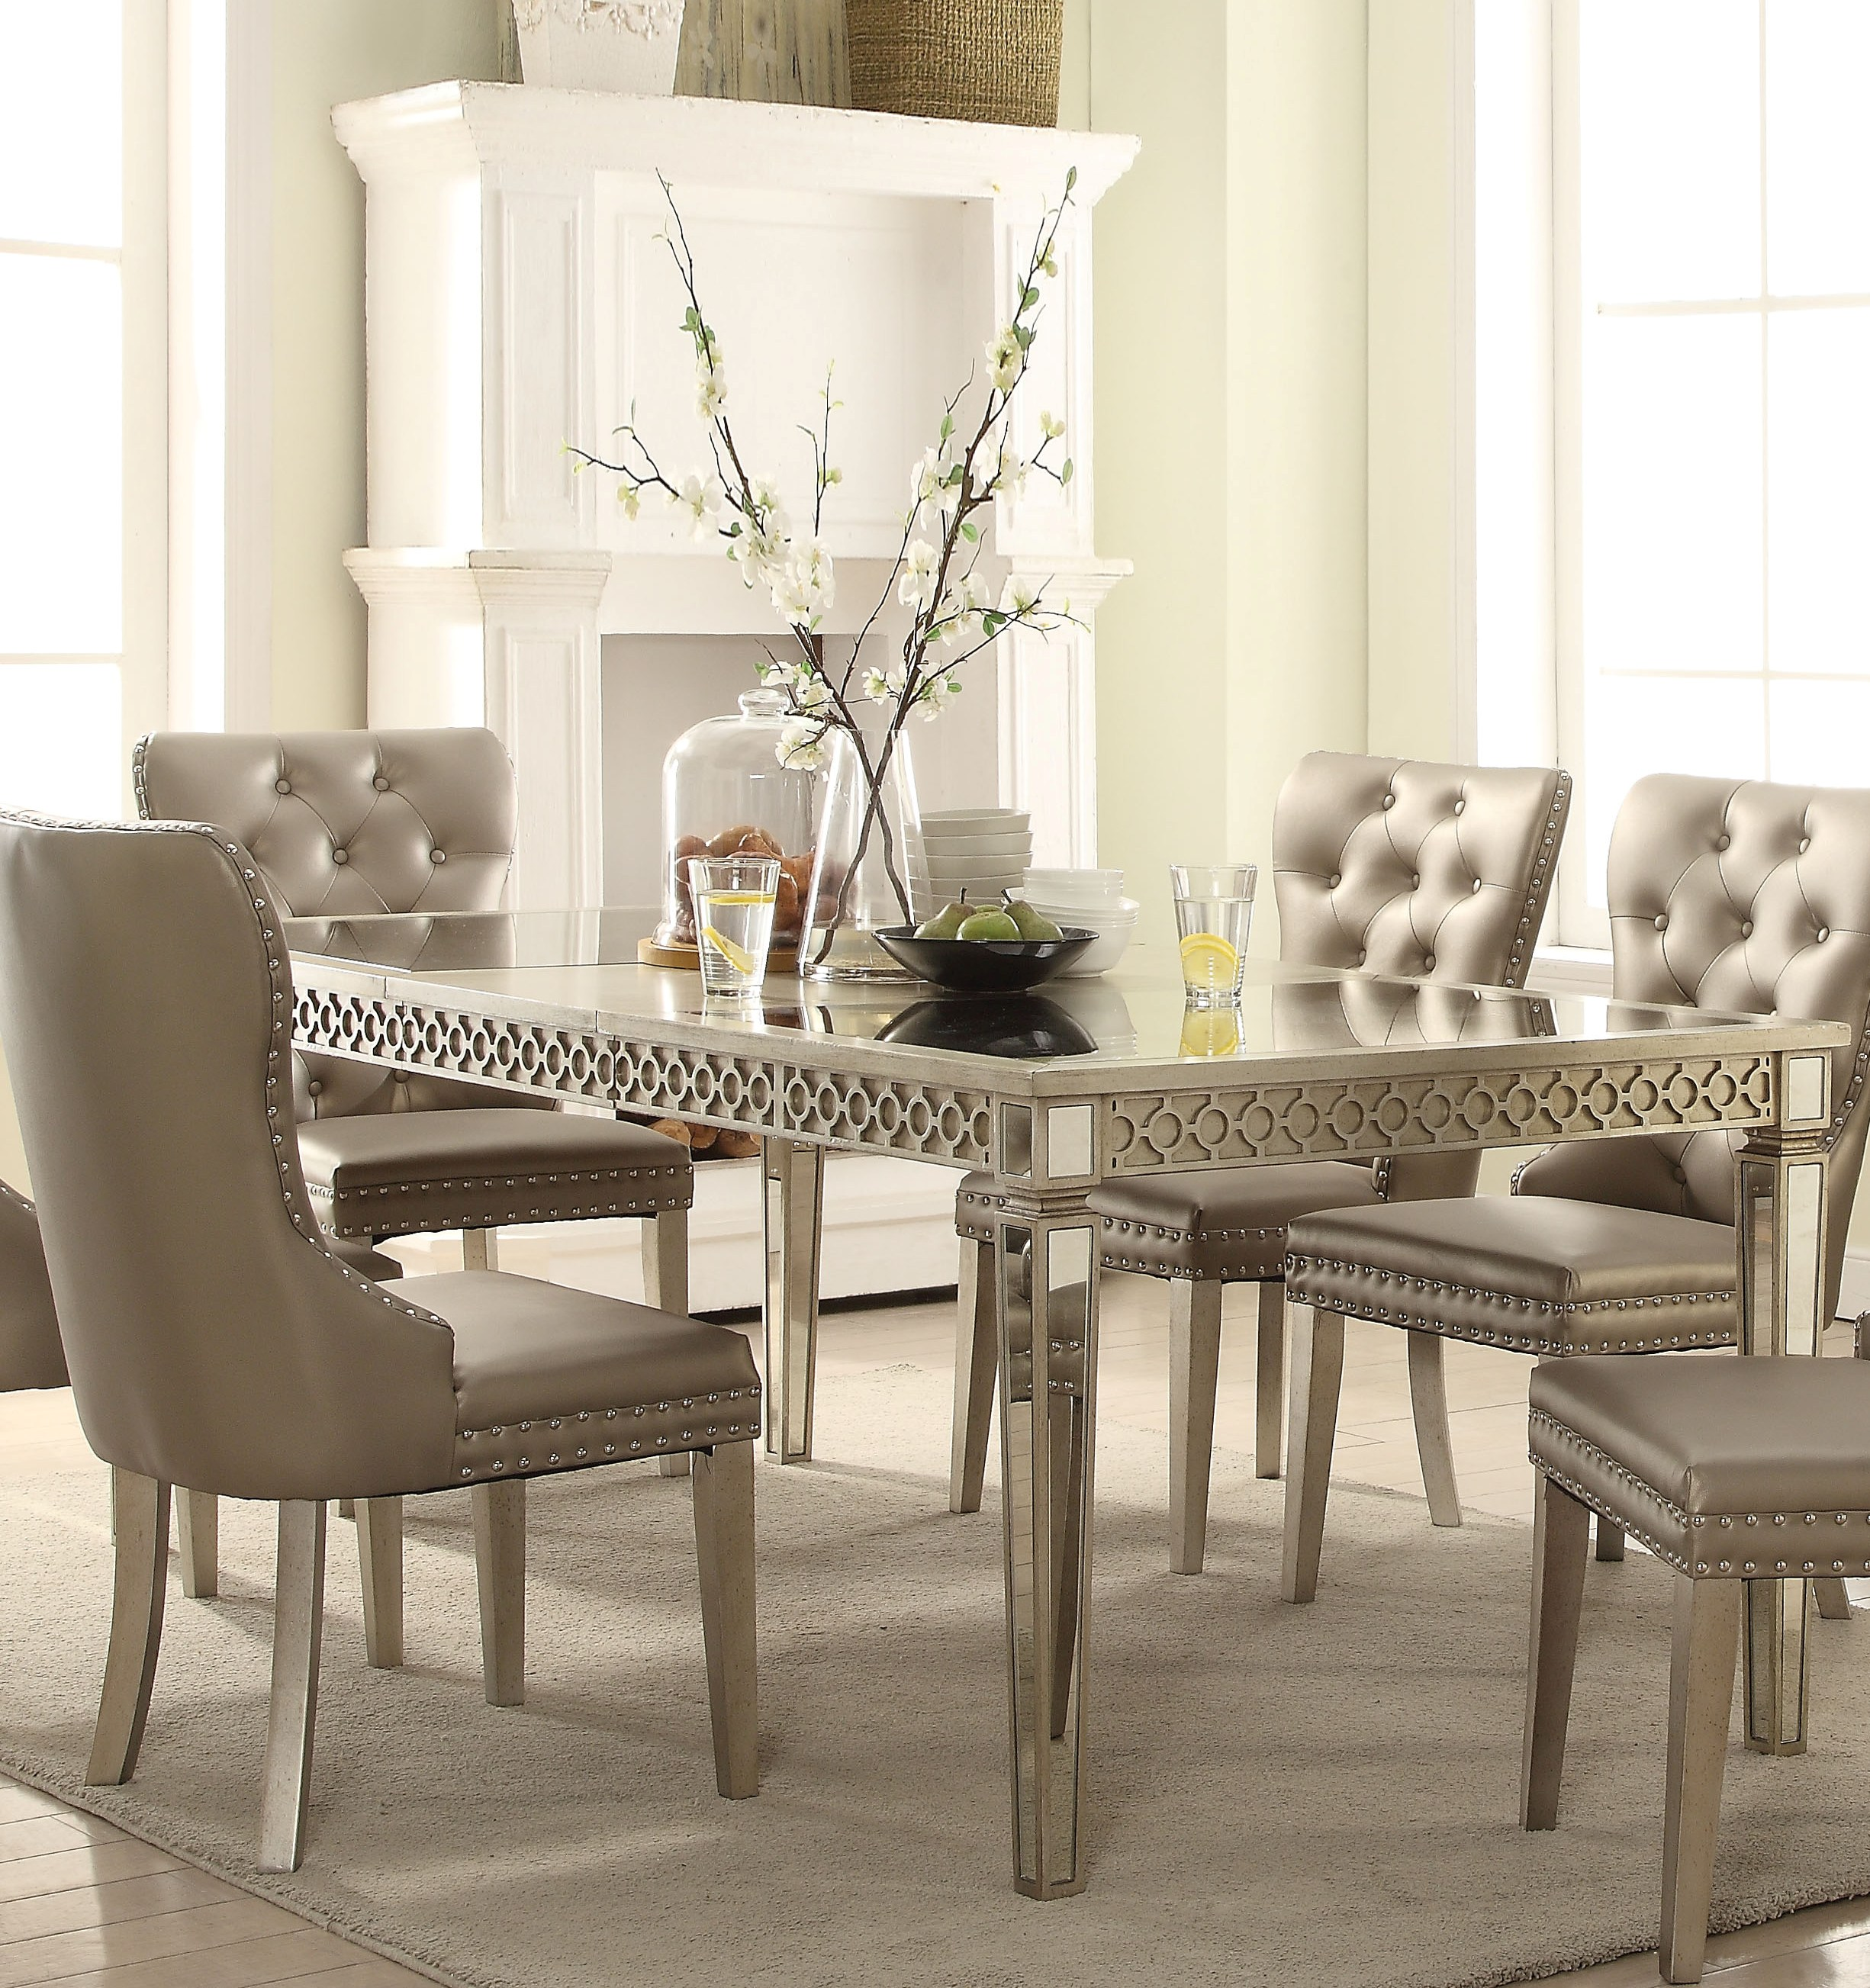 Champagne Dining Room Furniture: Acme Furniture Kacela Champagne Dining Table